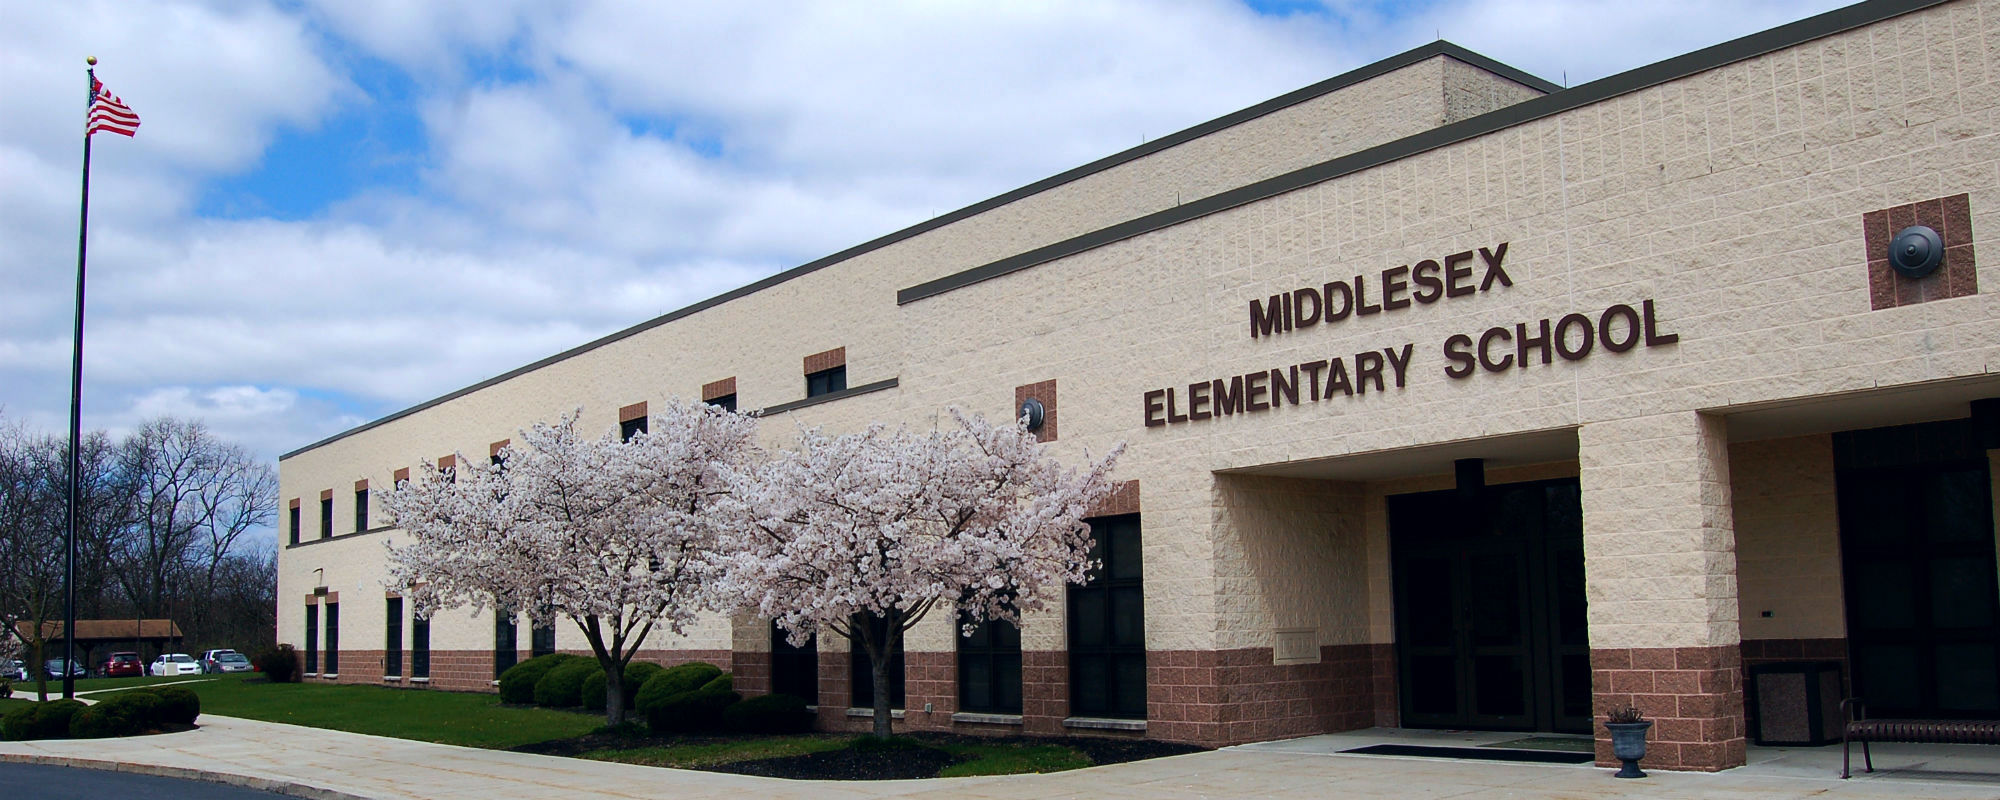 Welcome to Middlesex Elementary School!